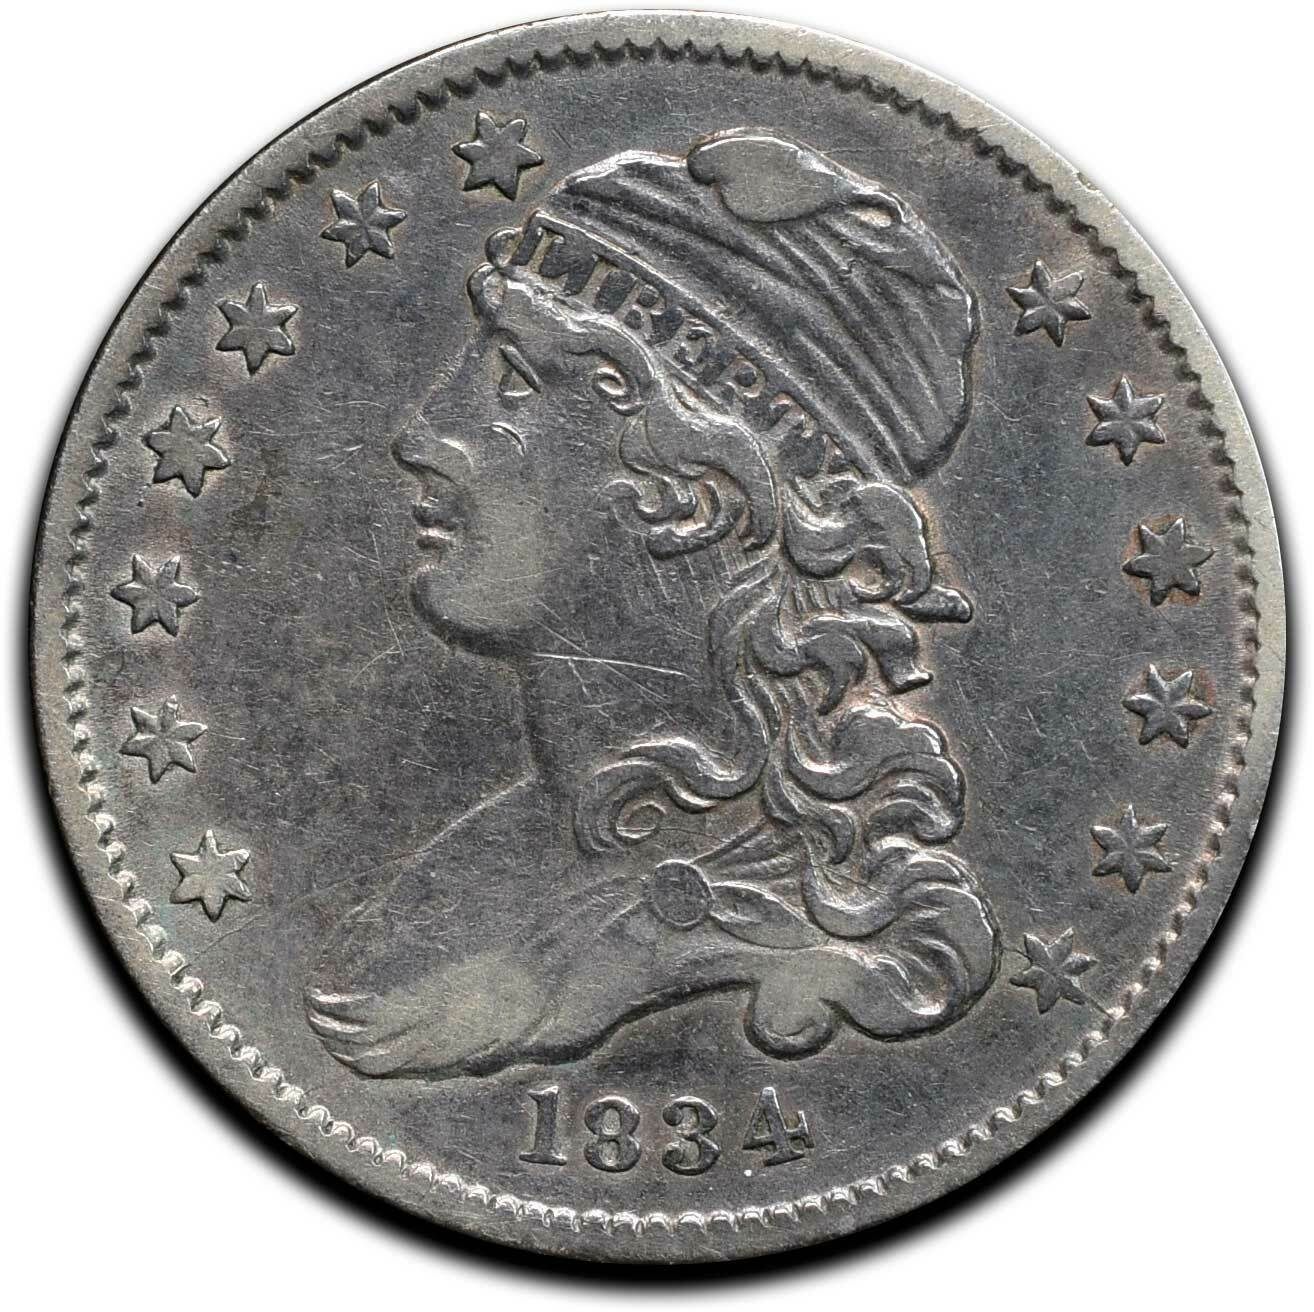 1834 Capped Bust Silver 25¢ Quarter Coin Lot# A 510